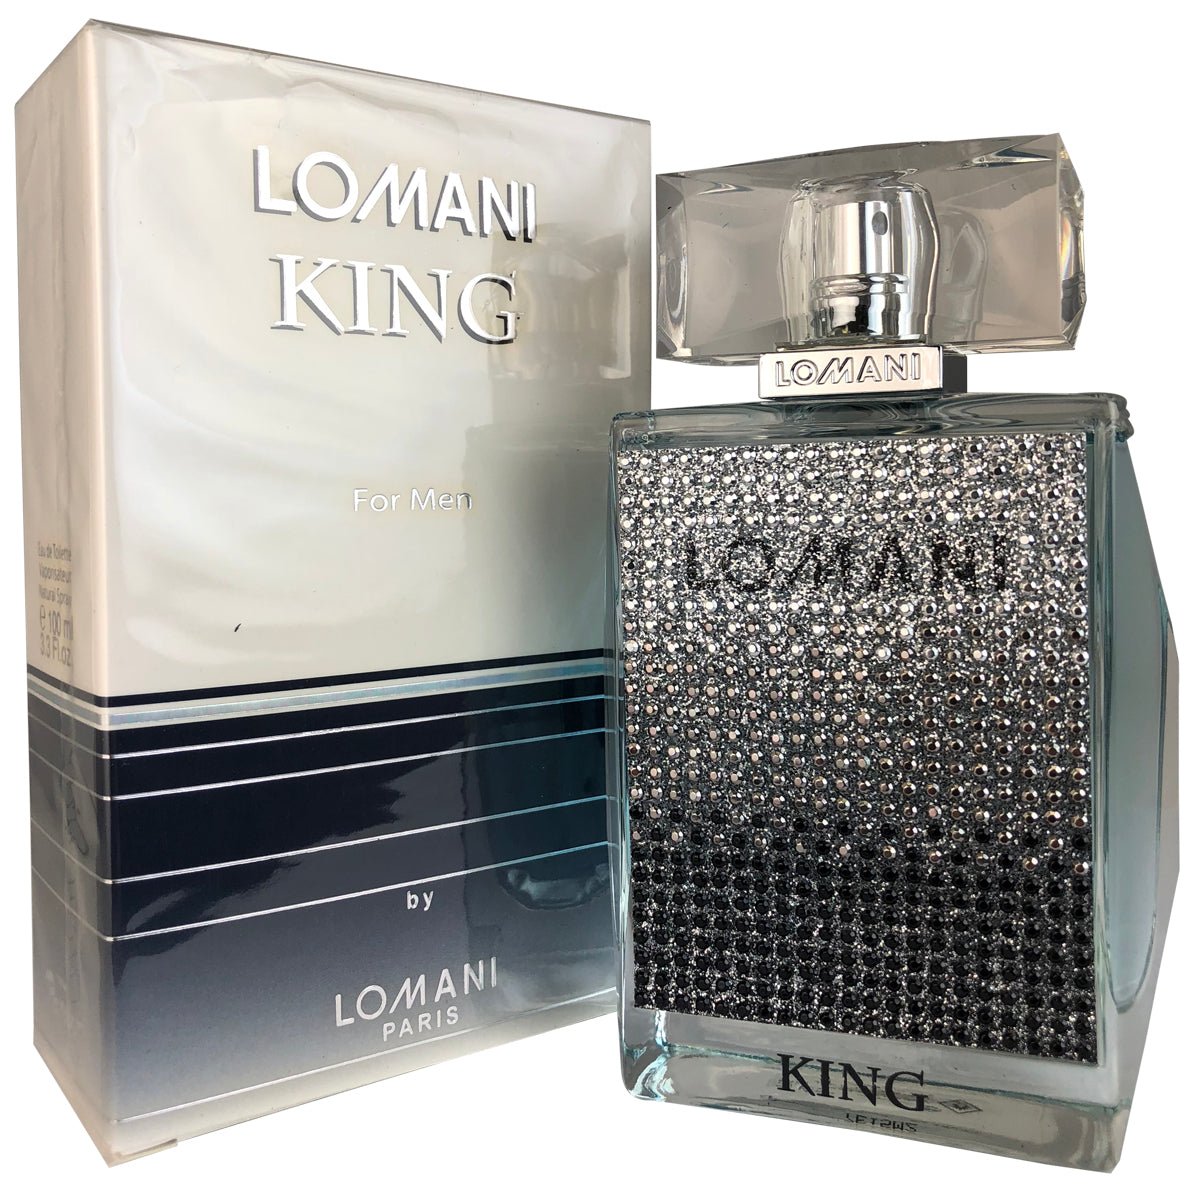 King for Men by Lomani Eau De Toilette 3.3 oz.